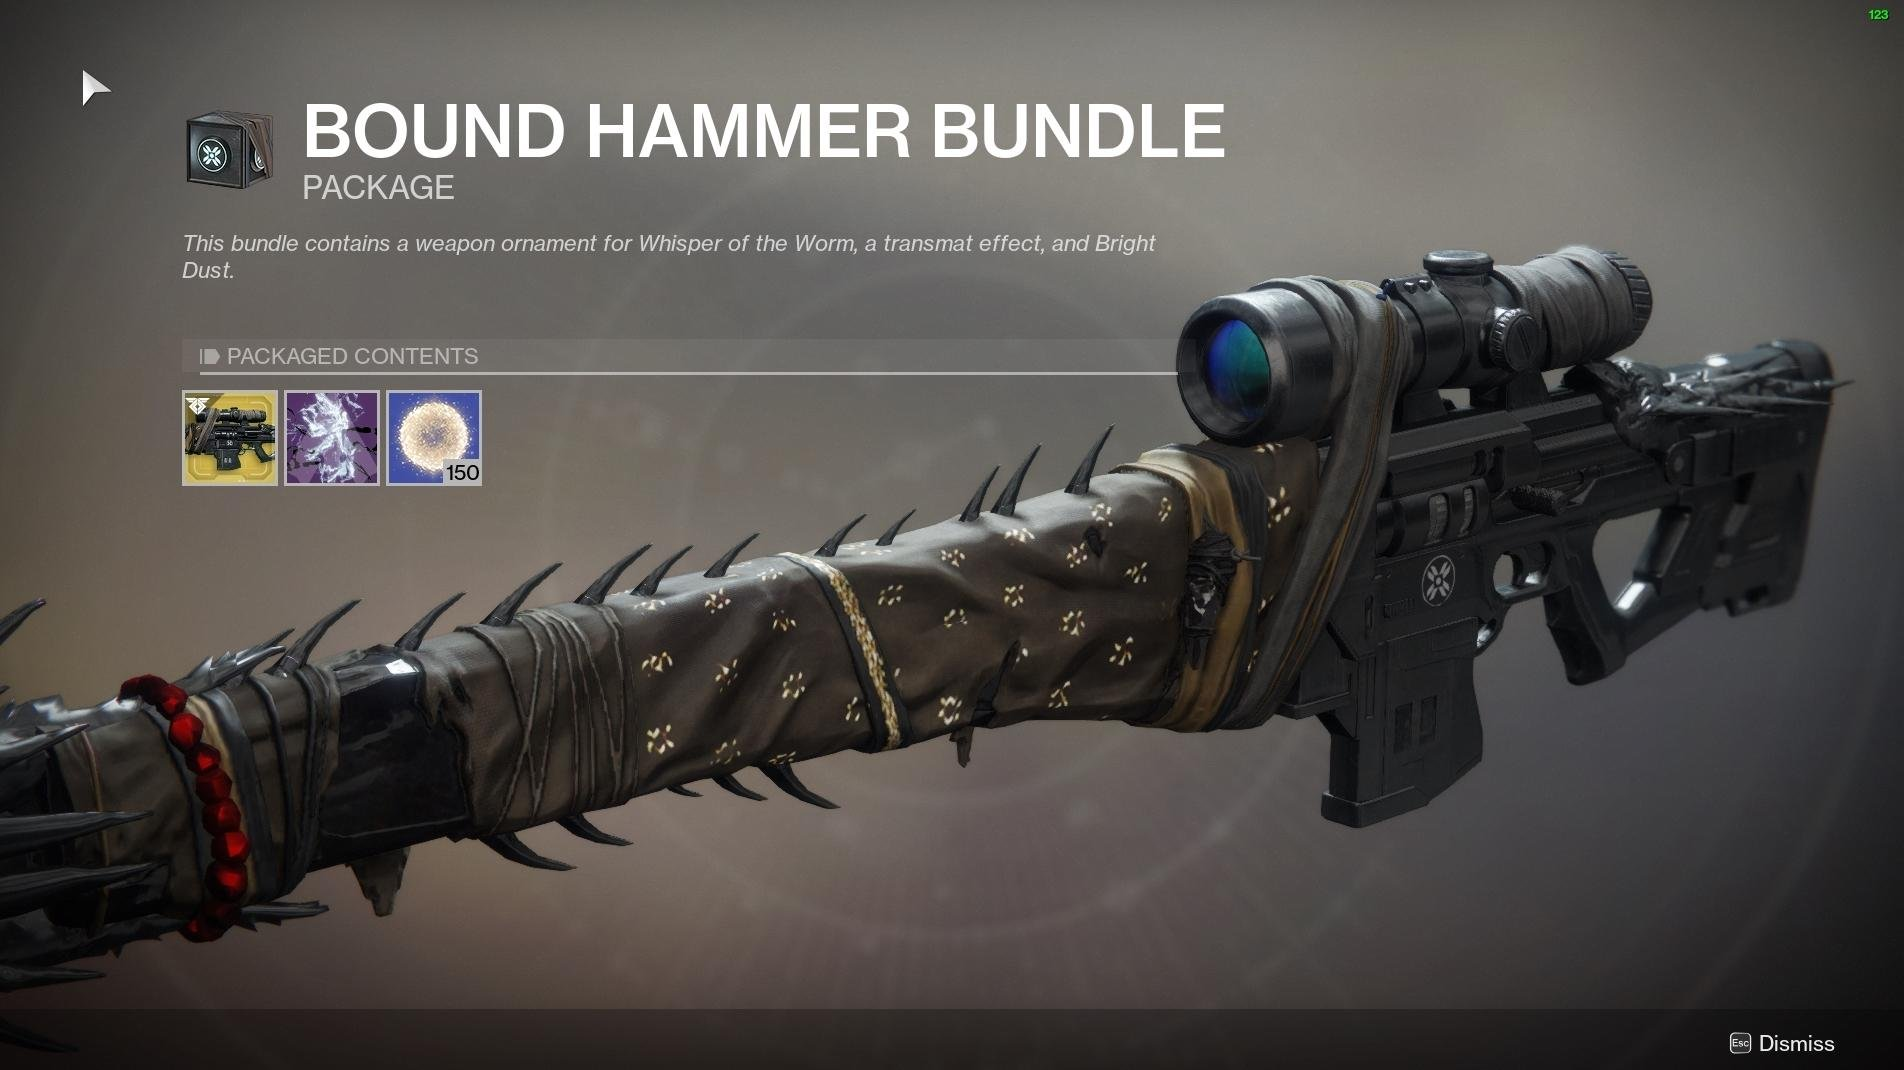 Destiny 2 microtransactions whisper of the worm ornaments zero hour